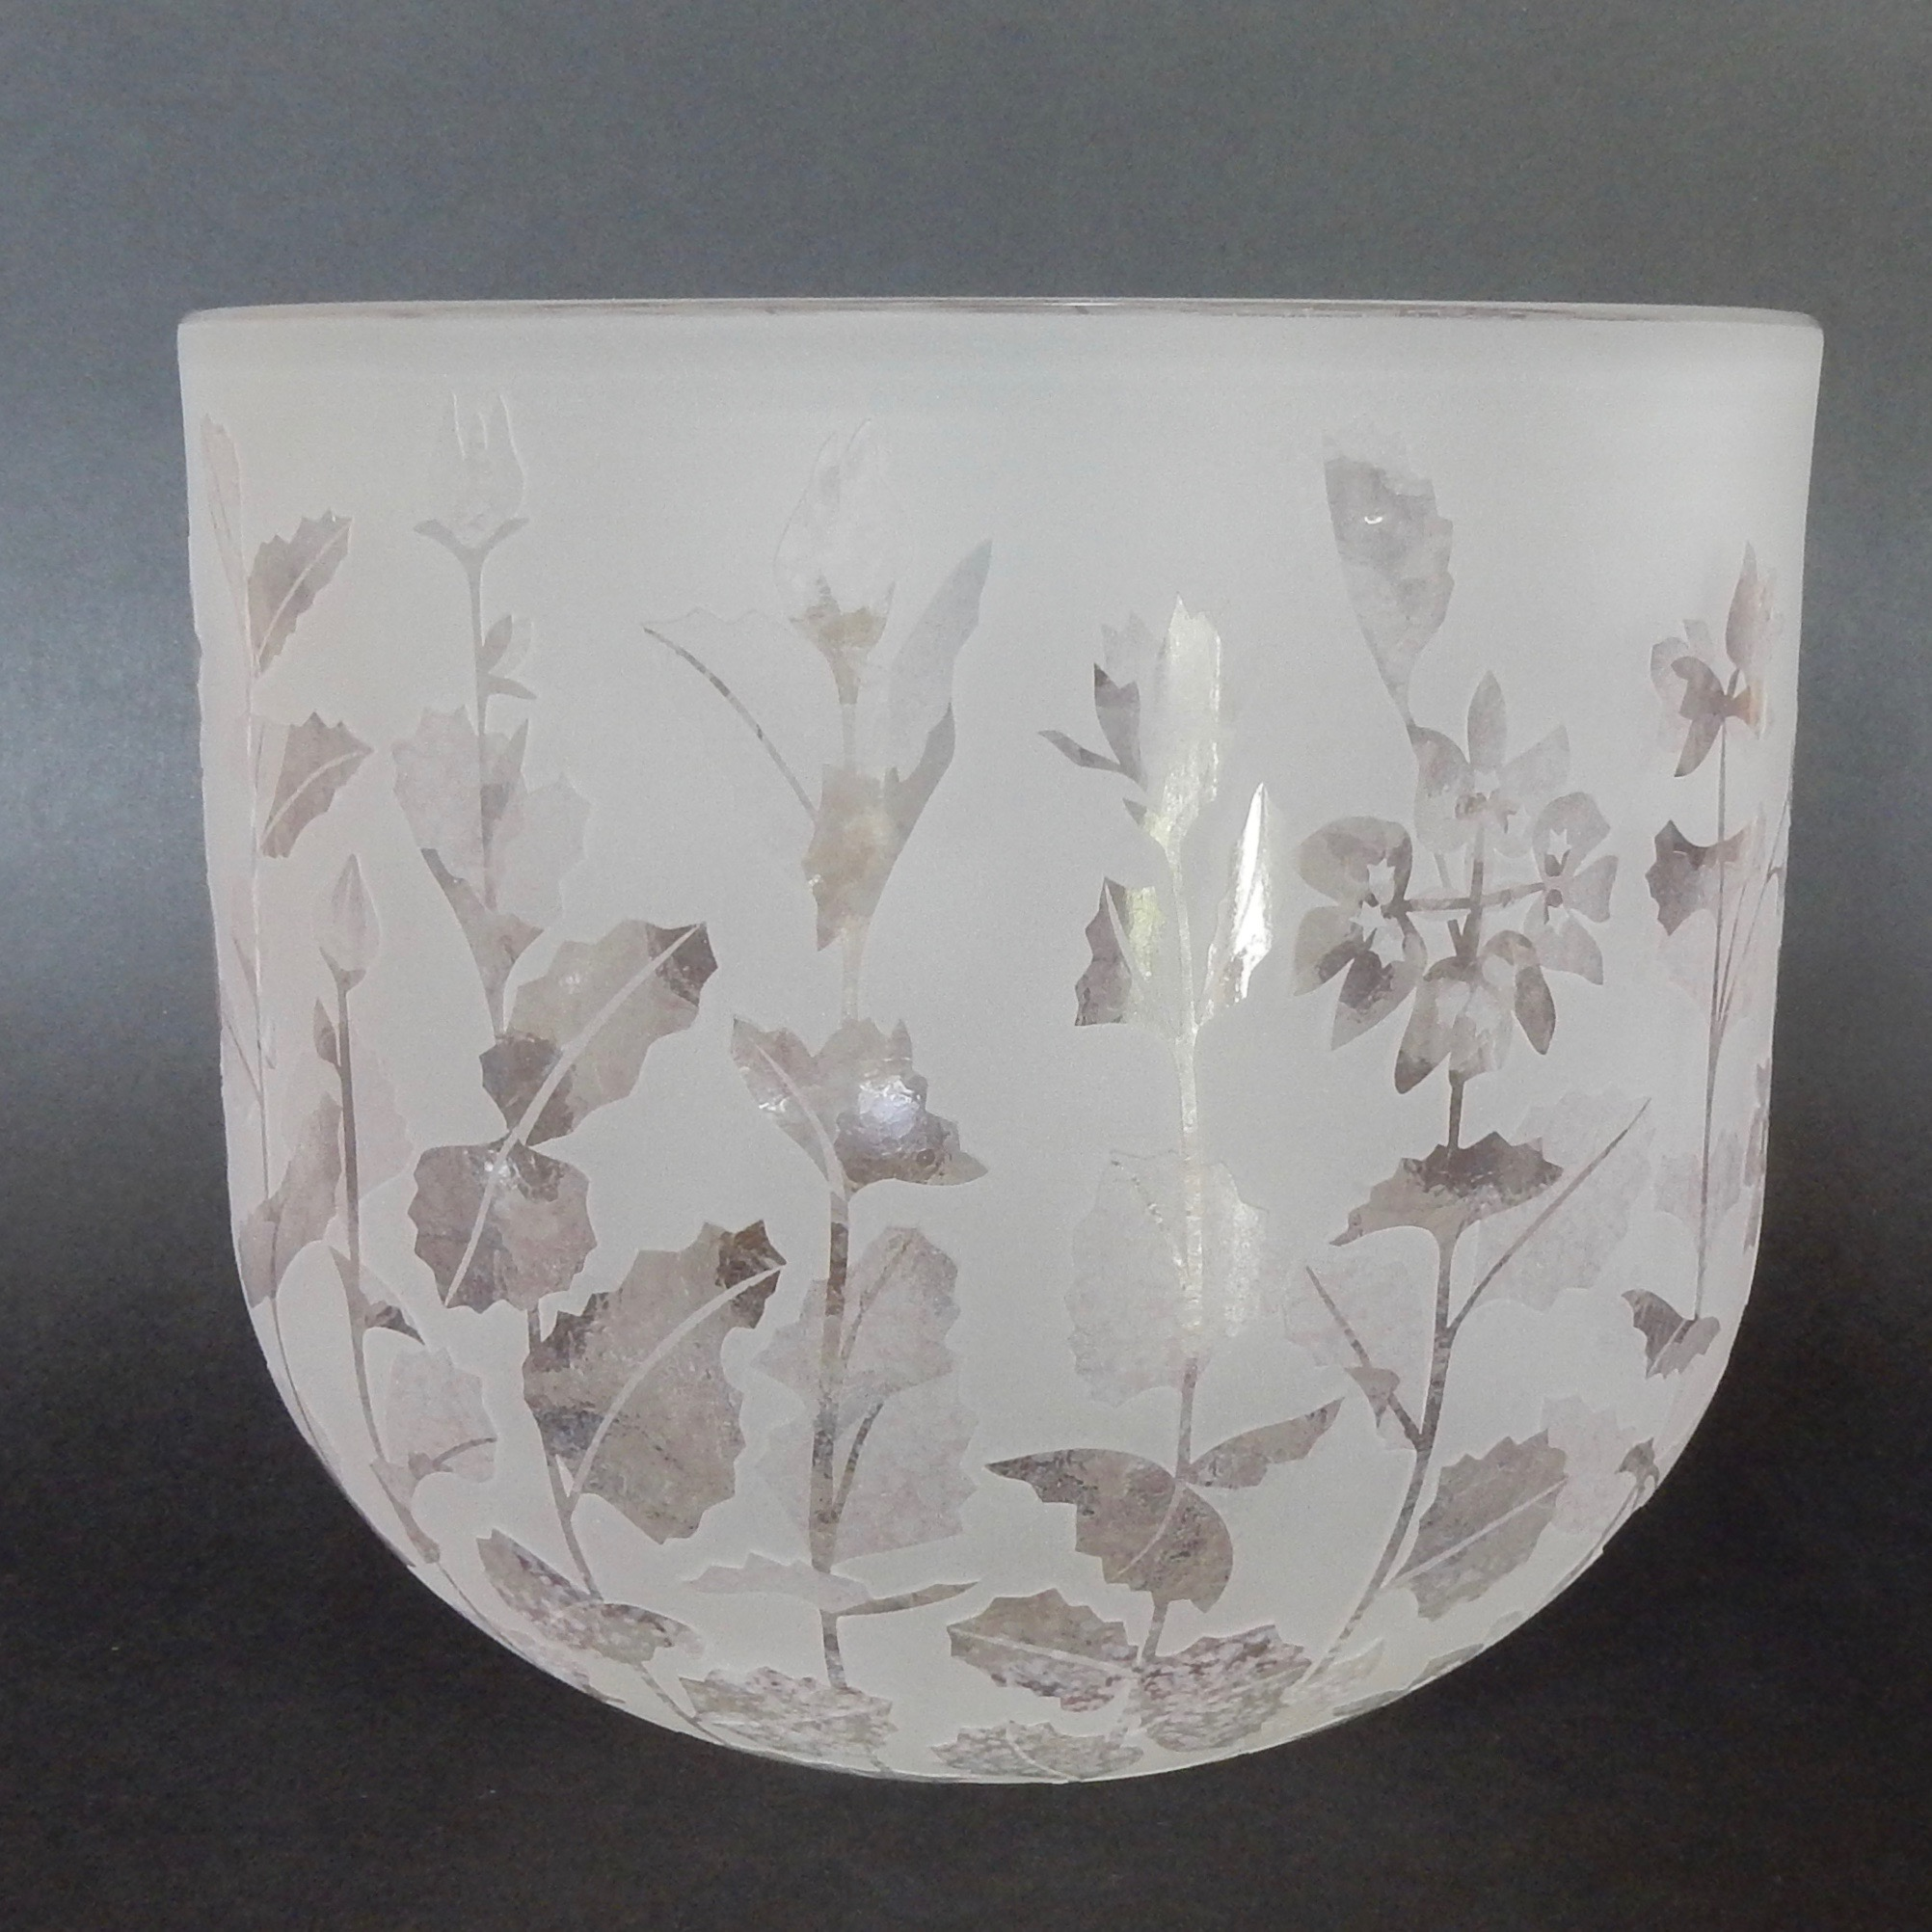 Southern cross bowl- Xanthosia rotundifolia by Amanda Louden. Blown and etched glass. H 185cm x W 205cm